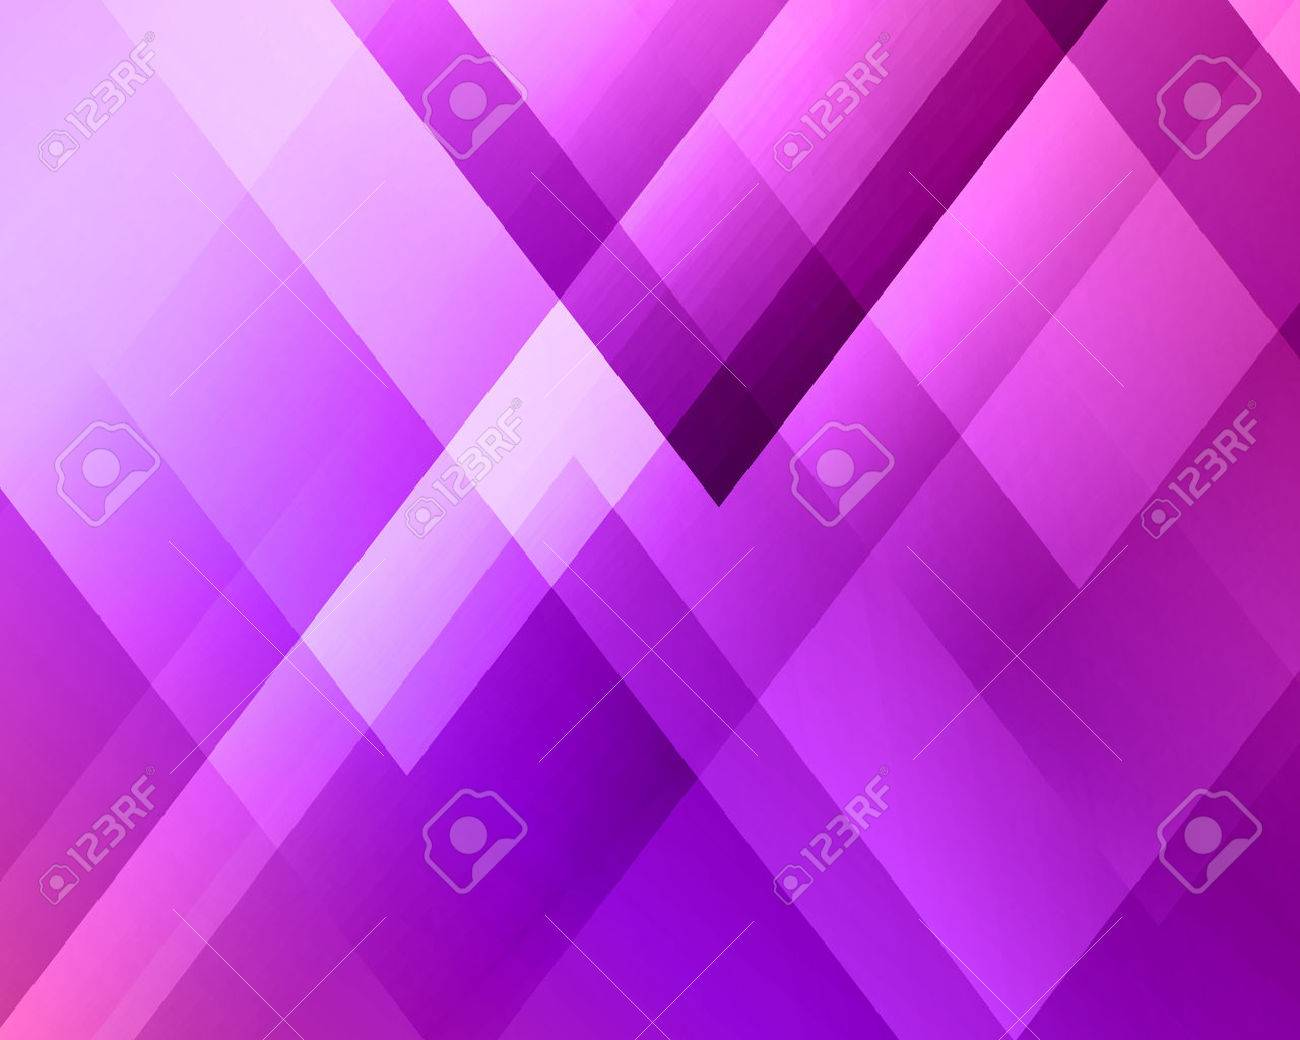 Abstract light background. Purple triangle pattern. Purple triangular background - 56196919